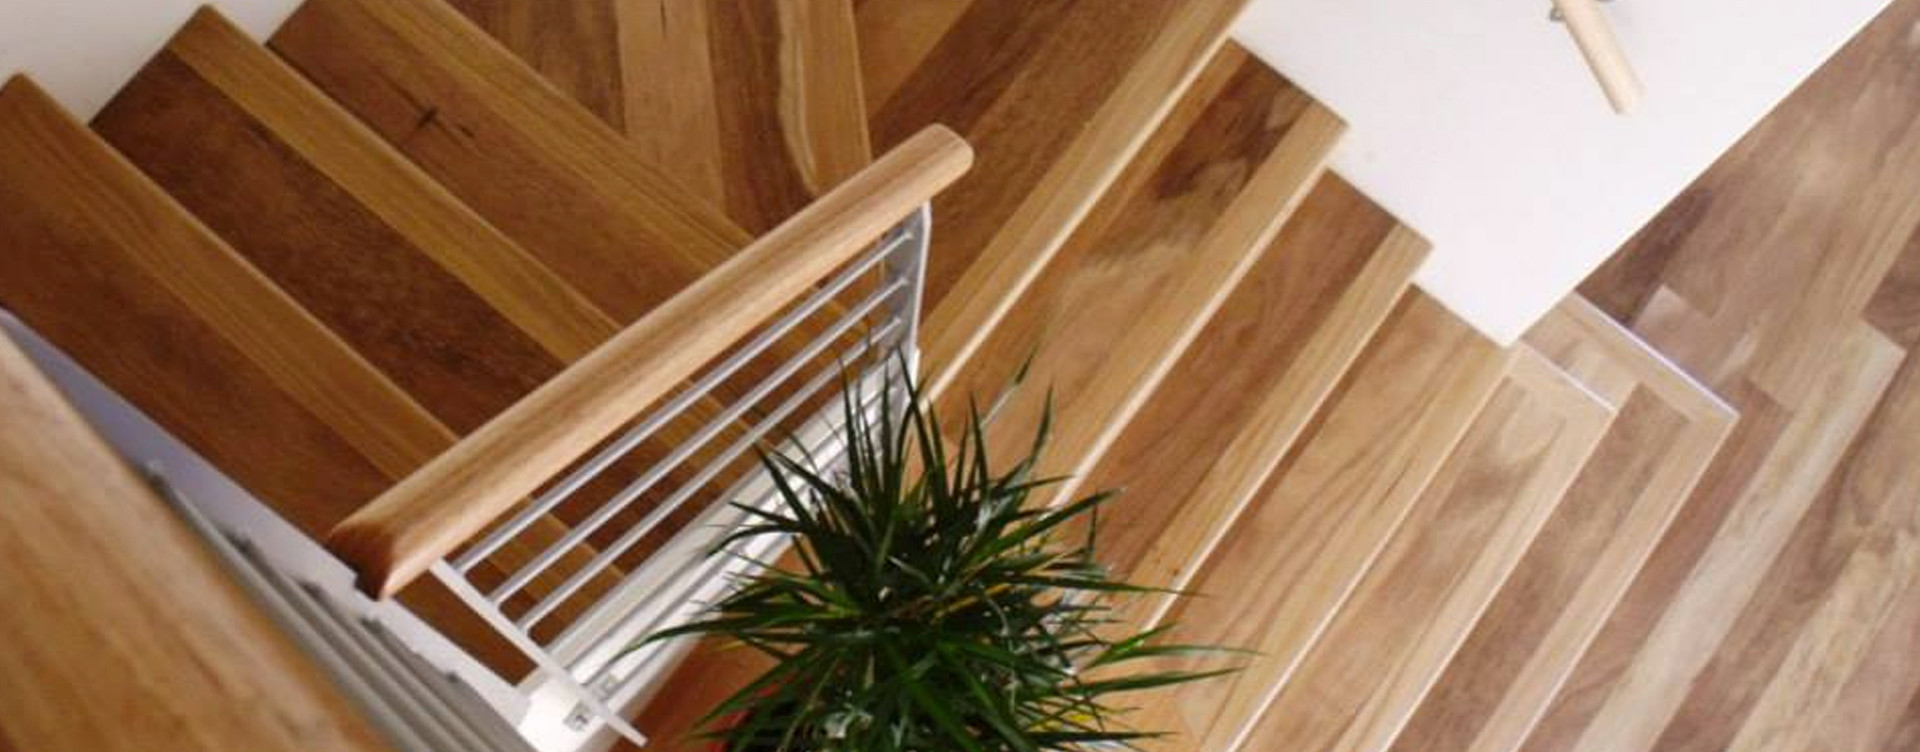 hardwood flooring products south bend of timber flooring perth coastal flooring wa quality wooden intended for flooring installation options